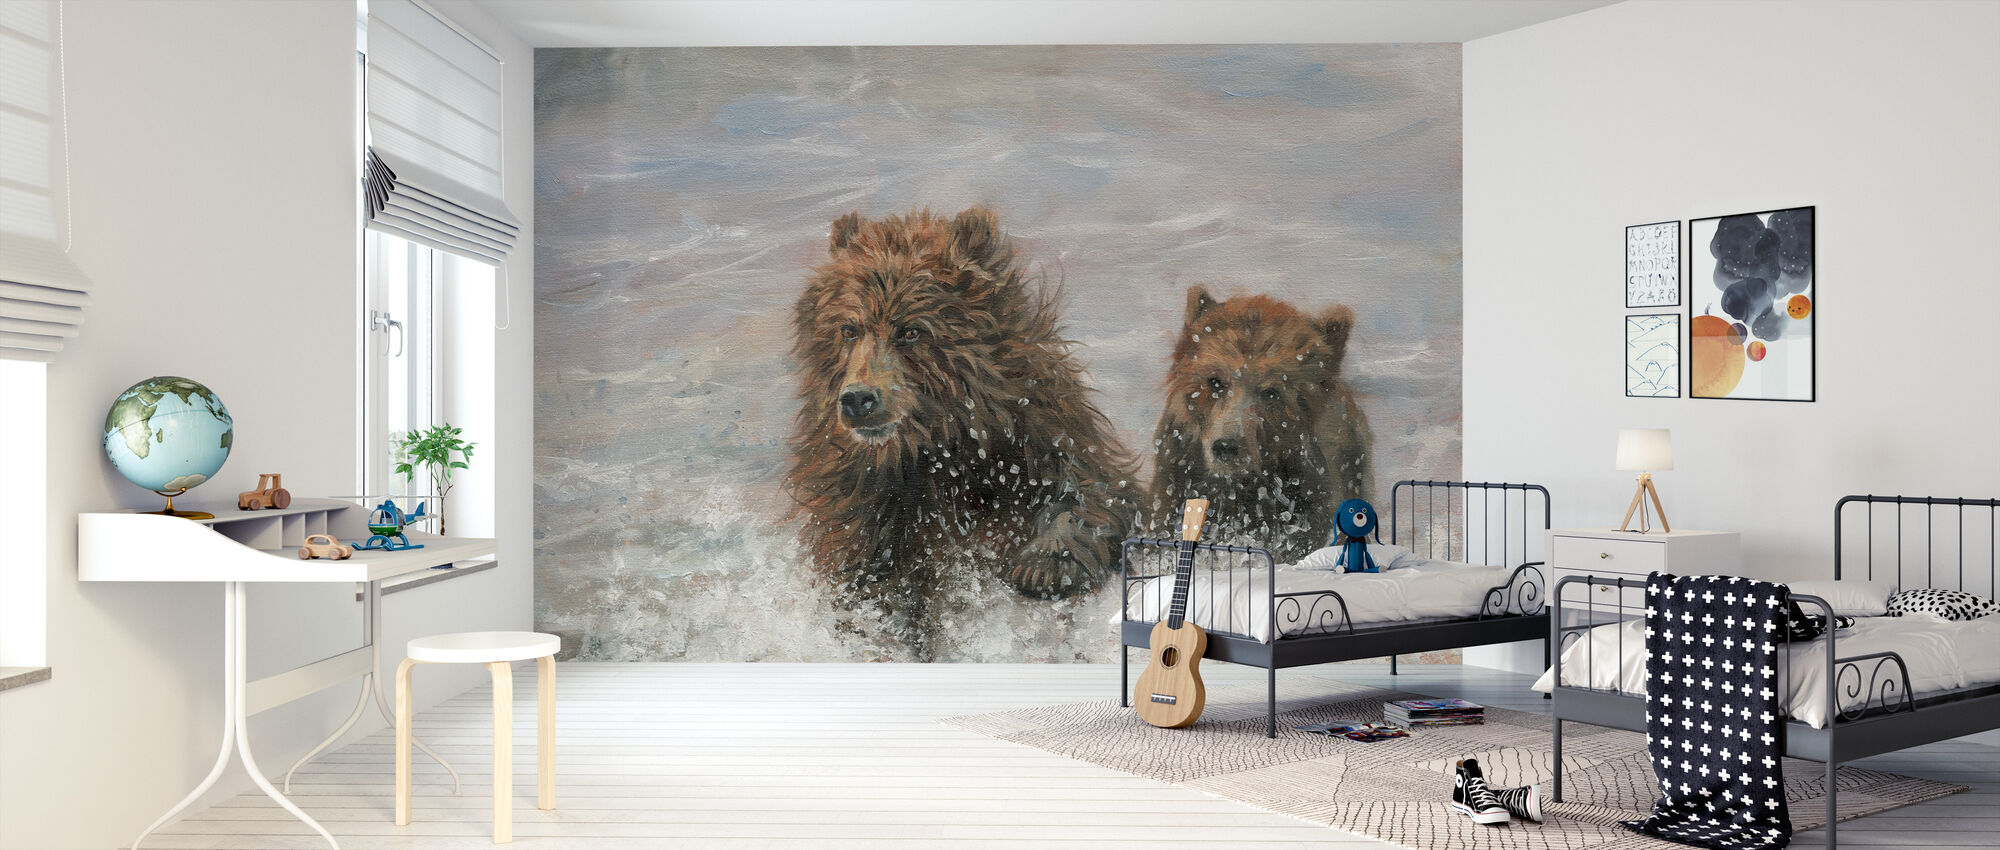 The Bears are Coming - Wallpaper - Kids Room